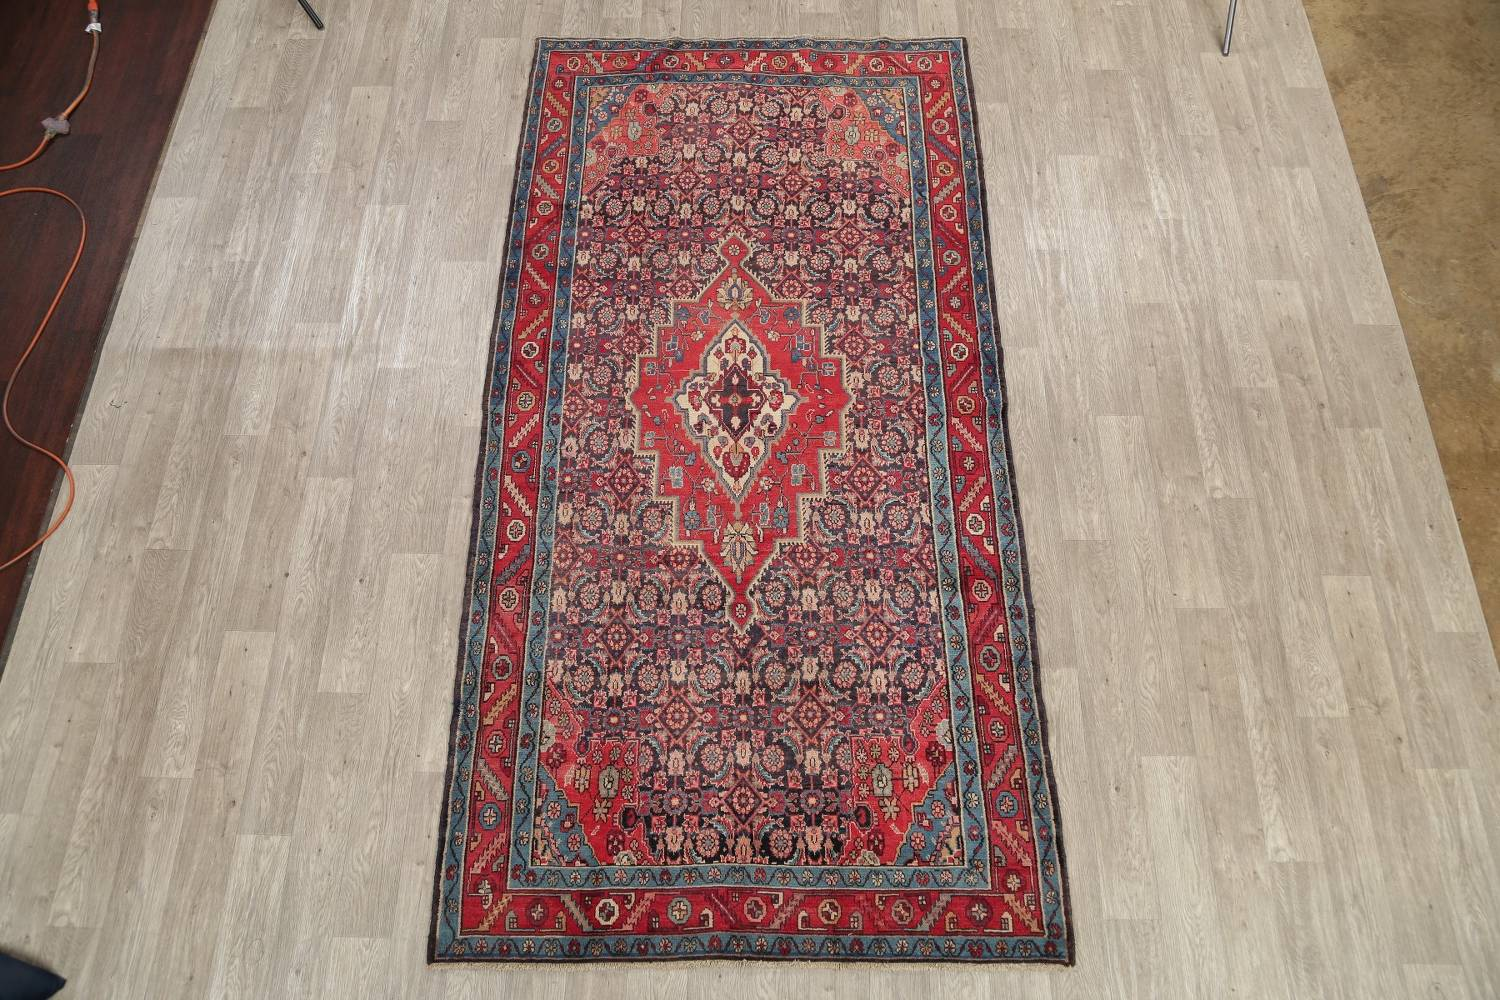 Antique Bakhtiari Persian Hand-Knotted 5x10 Wool Runner Rug image 2